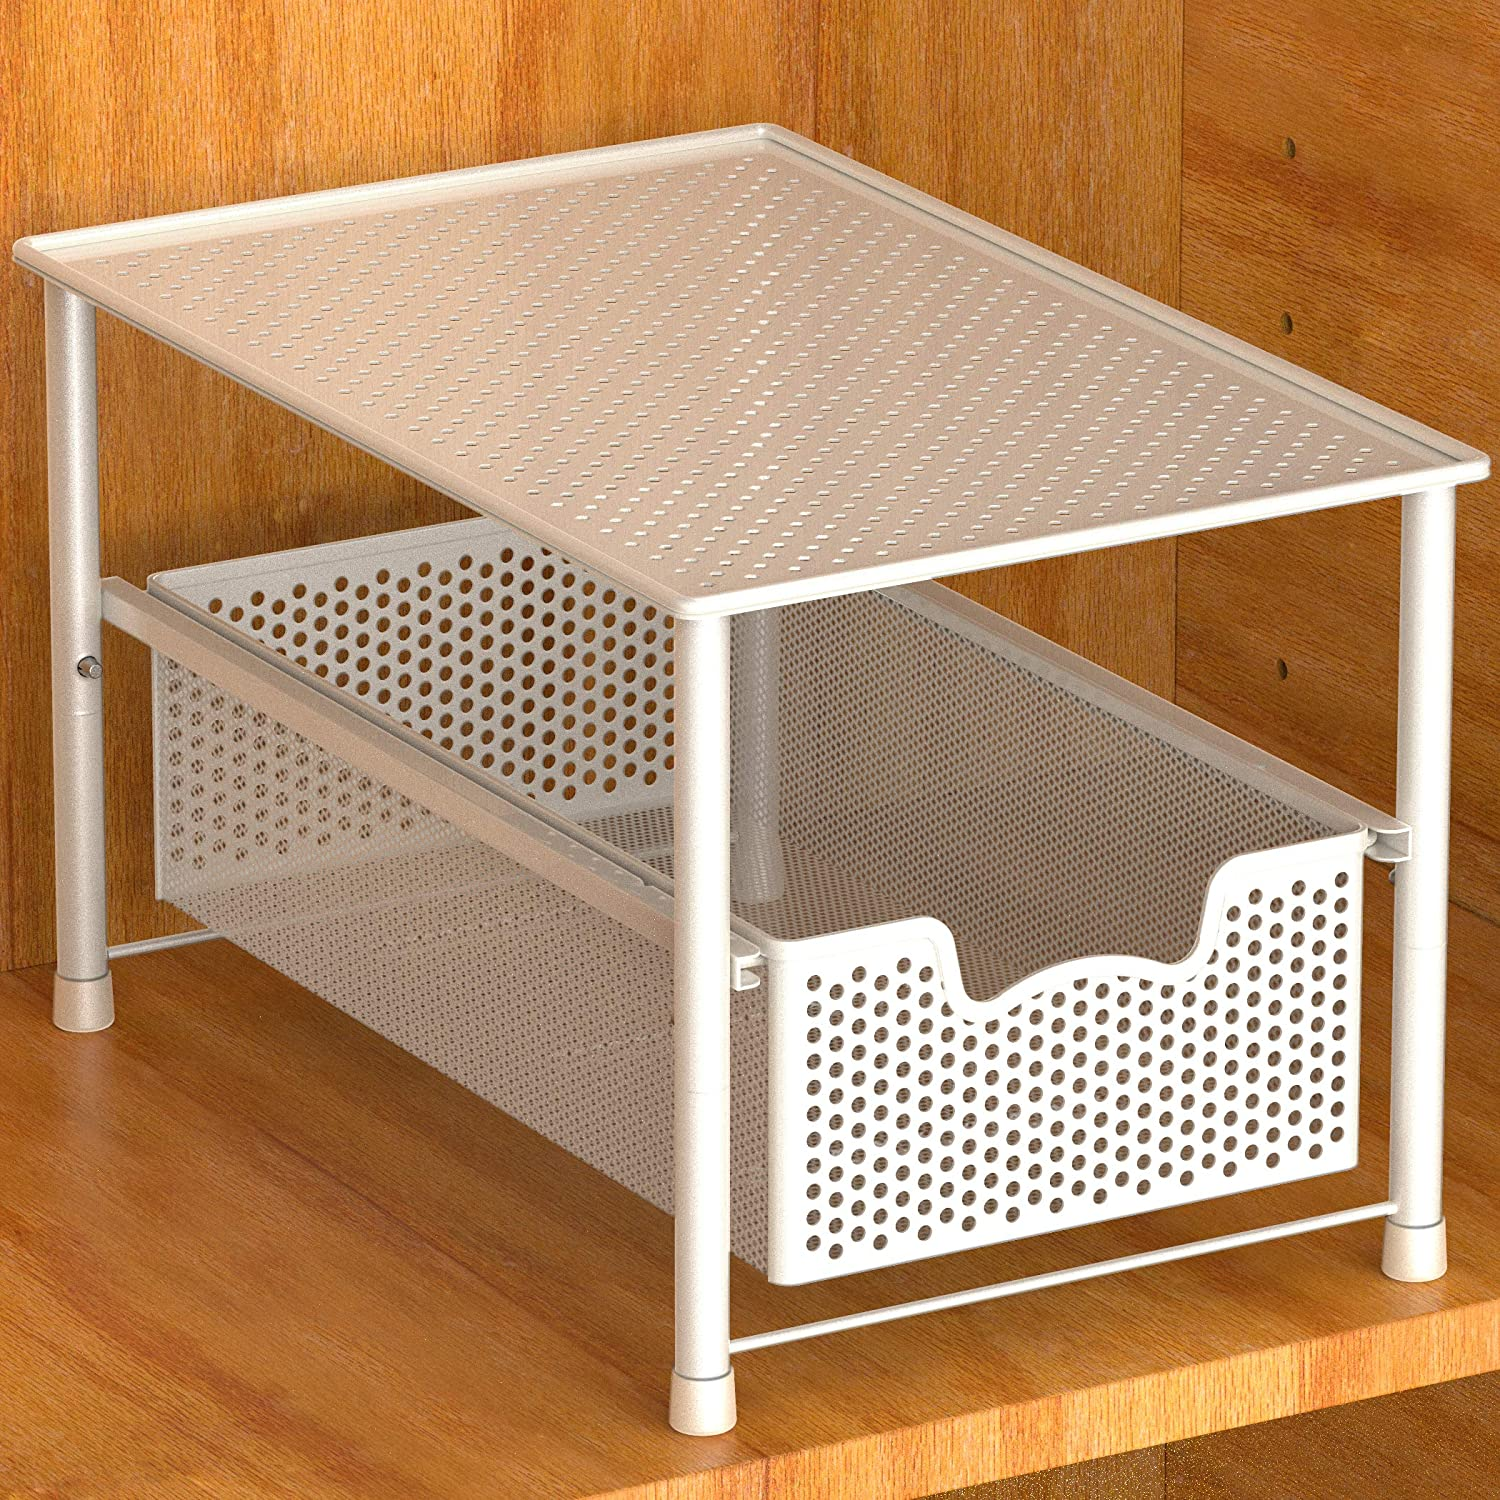 Simple Houseware Stackable Under At the price Sink Sliding Basket Cabinet NEW Org